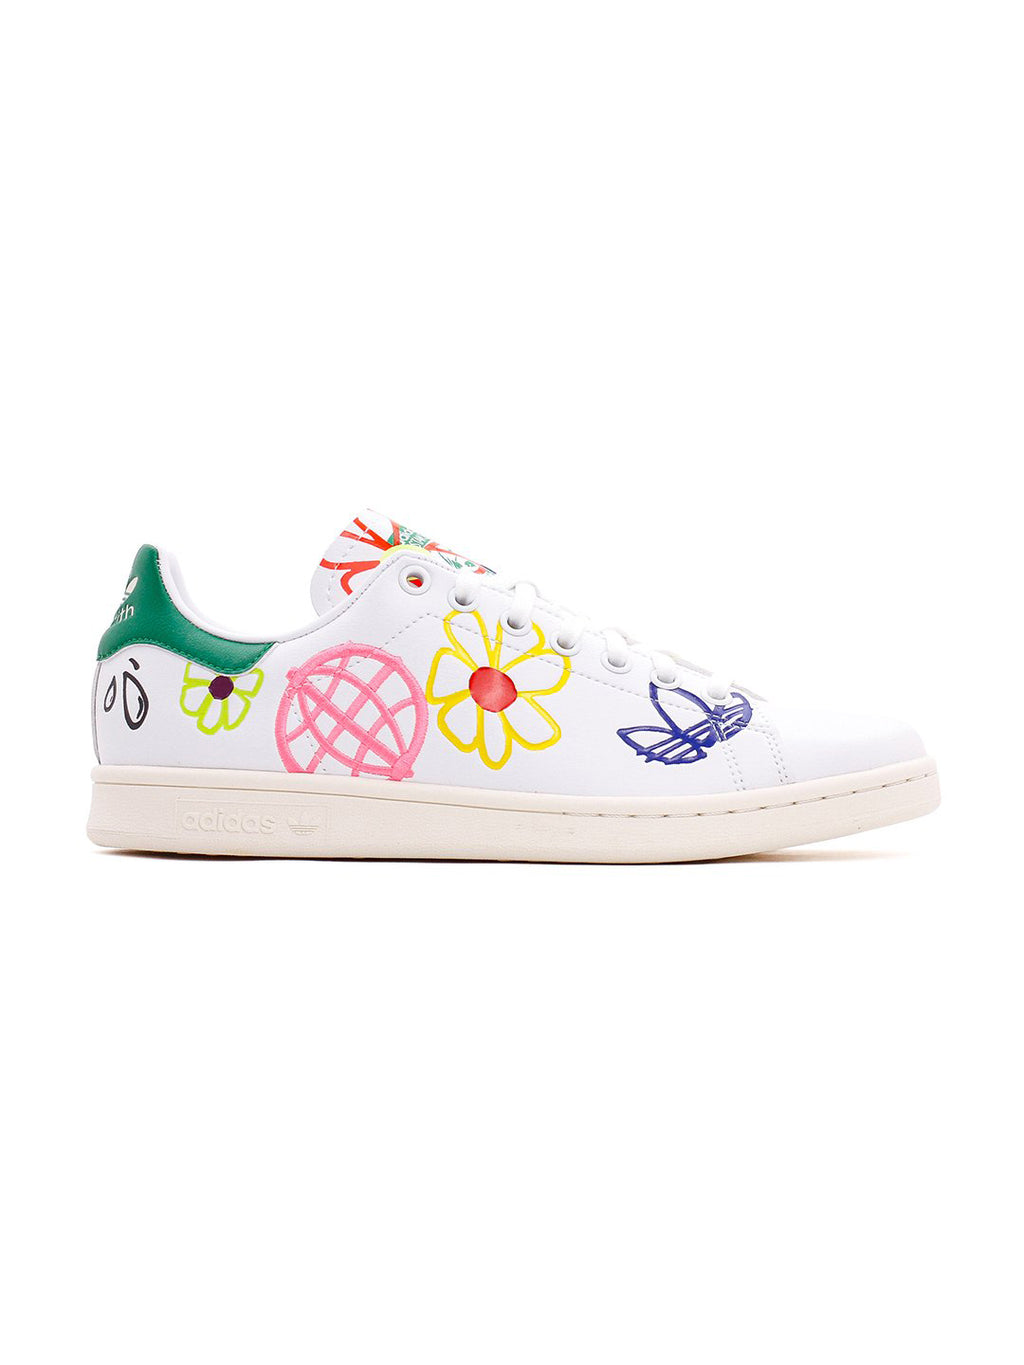 Multi Stan Smith Shoes